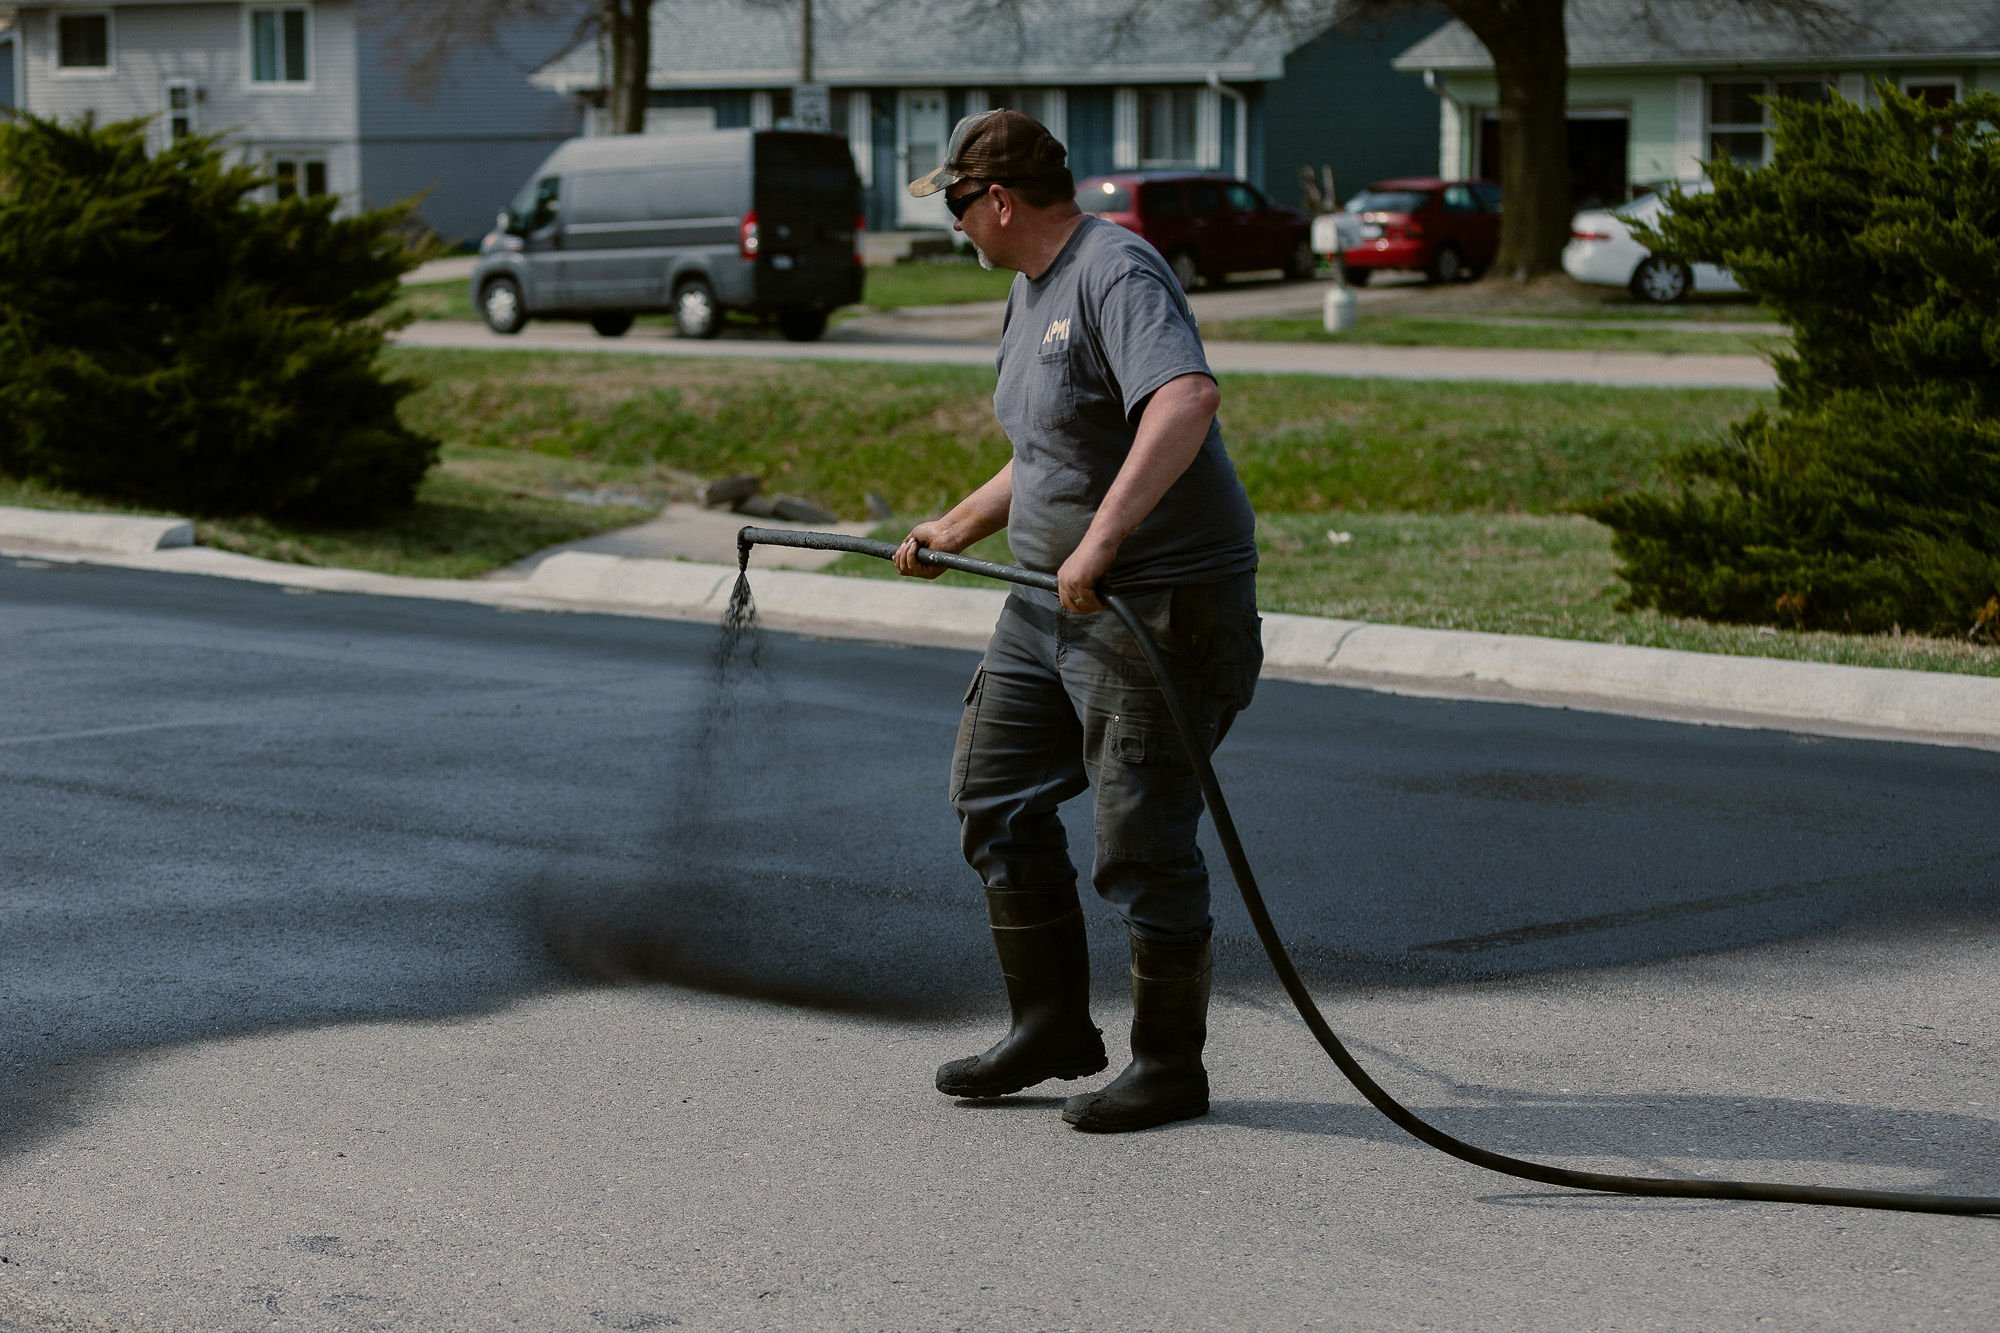 Lincoln Paving and Asphalt Repair apms 1191 - APMS Lincoln Paving Services